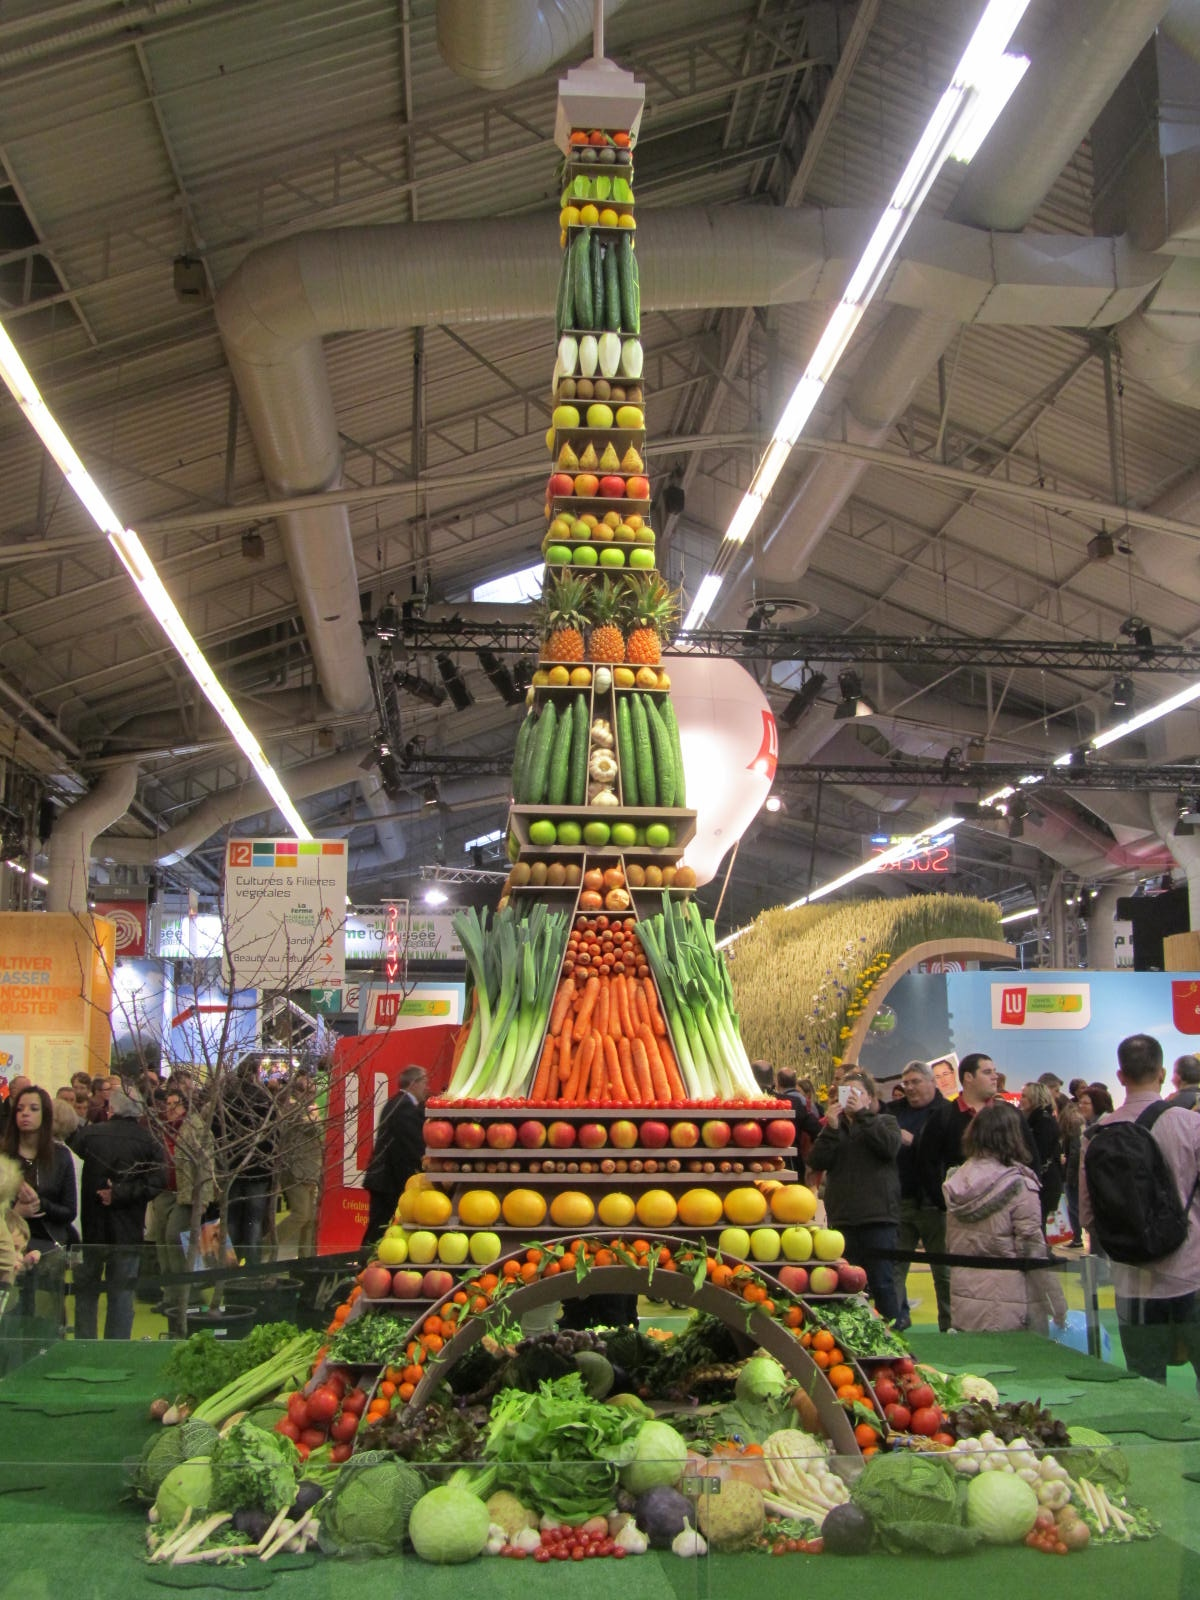 Paris 2014 day 20 salon de l agriculture french by for Salon agriculture paris 2015